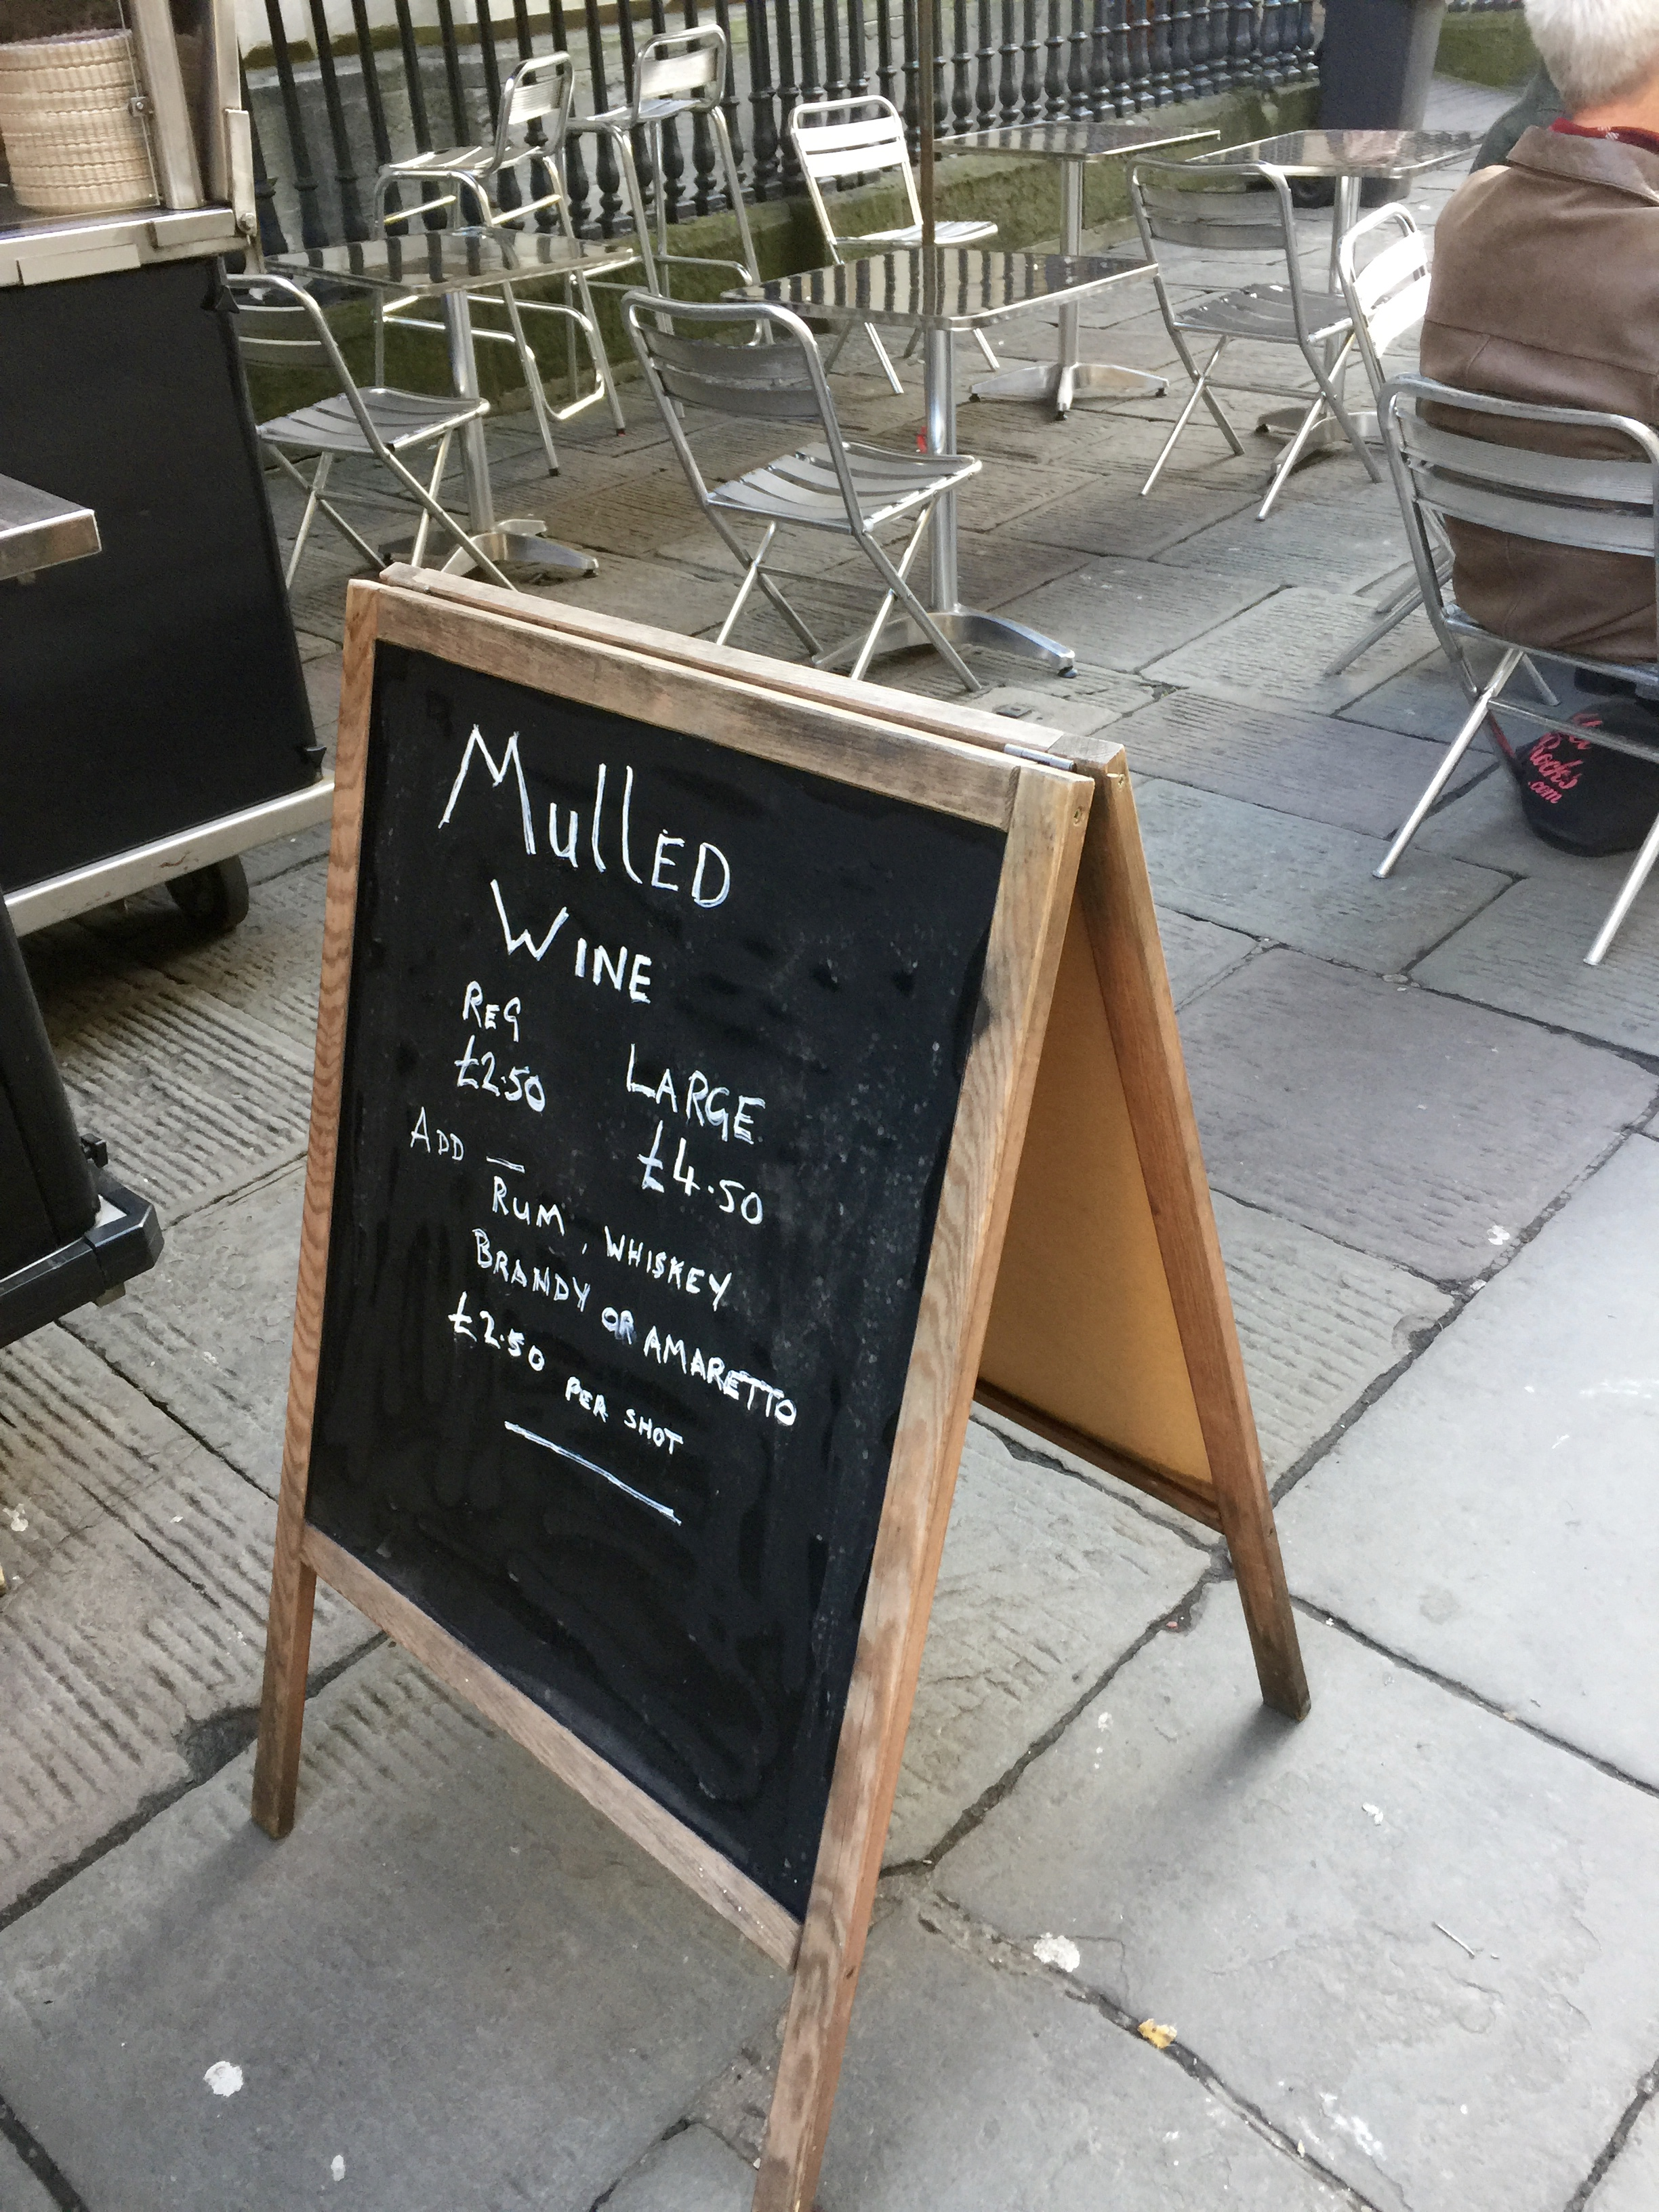 I just had the regular mulled wine, it felt a little early in the day to add a shot!